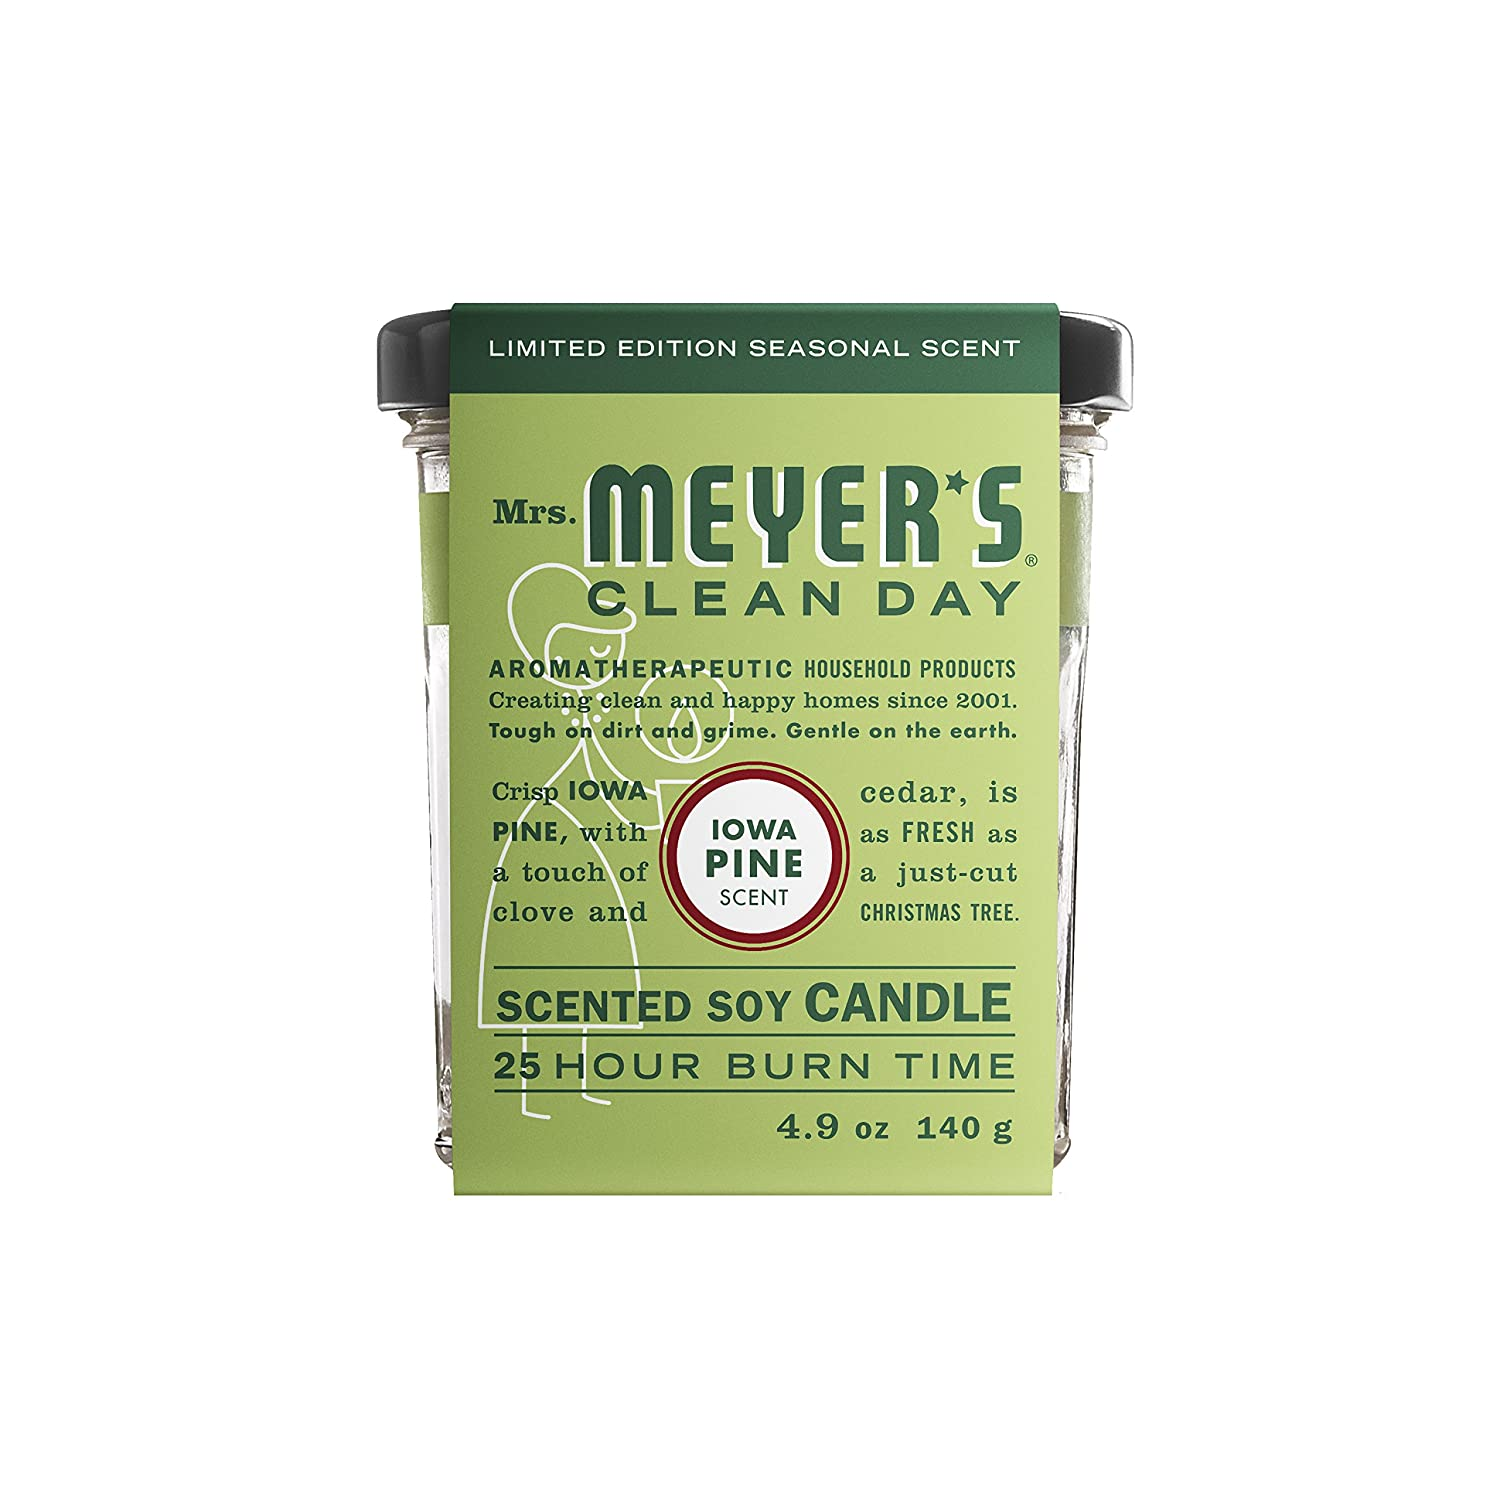 Mrs. Meyer's Clean Day Scented Soy Candle, Small Glass, Iowa Pine, 4.9 oz